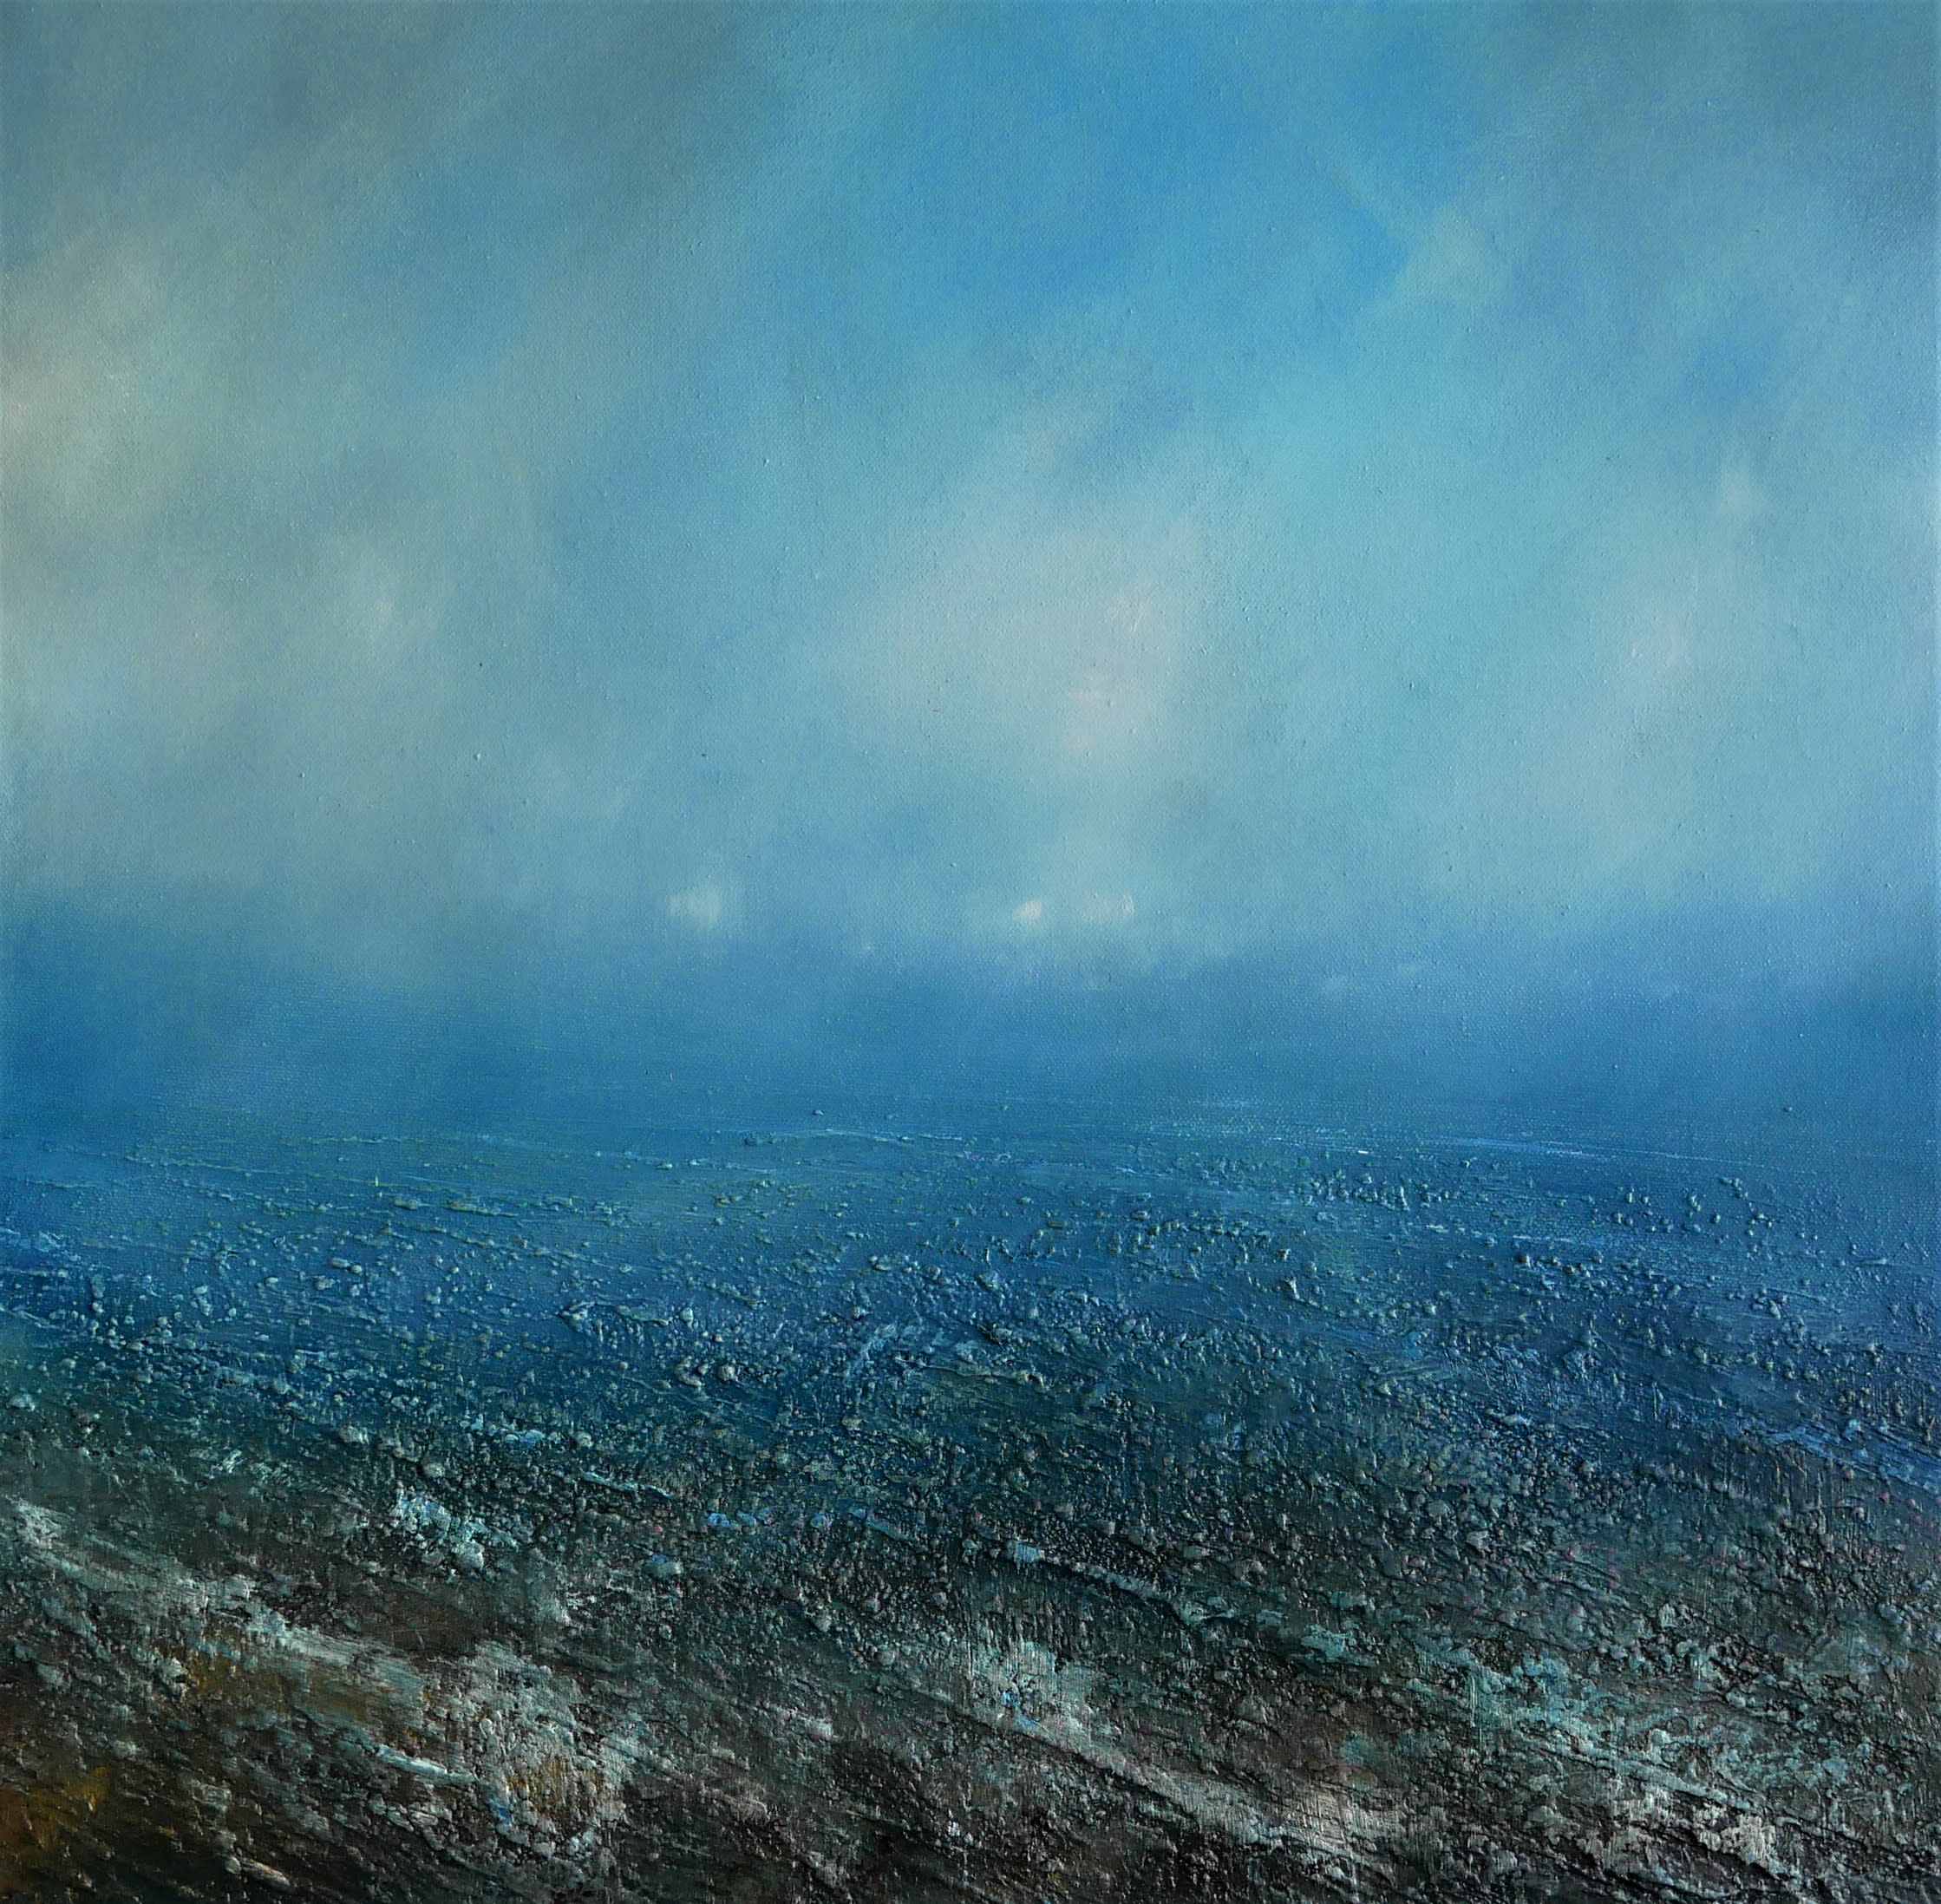 "<span class=""link fancybox-details-link""><a href=""/artists/78-martyn-perryman/works/6497-martyn-perryman-enduring-light-1-2019/"">View Detail Page</a></span><div class=""artist""><strong>Martyn Perryman</strong></div> <div class=""title""><em>Enduring Light 1</em>, 2019</div> <div class=""medium"">oil on canvas</div> <div class=""dimensions"">h. 60 x w. 60 cm </div><div class=""copyright_line"">Ownart: £87 x 10 Months, 0% APR</div>"